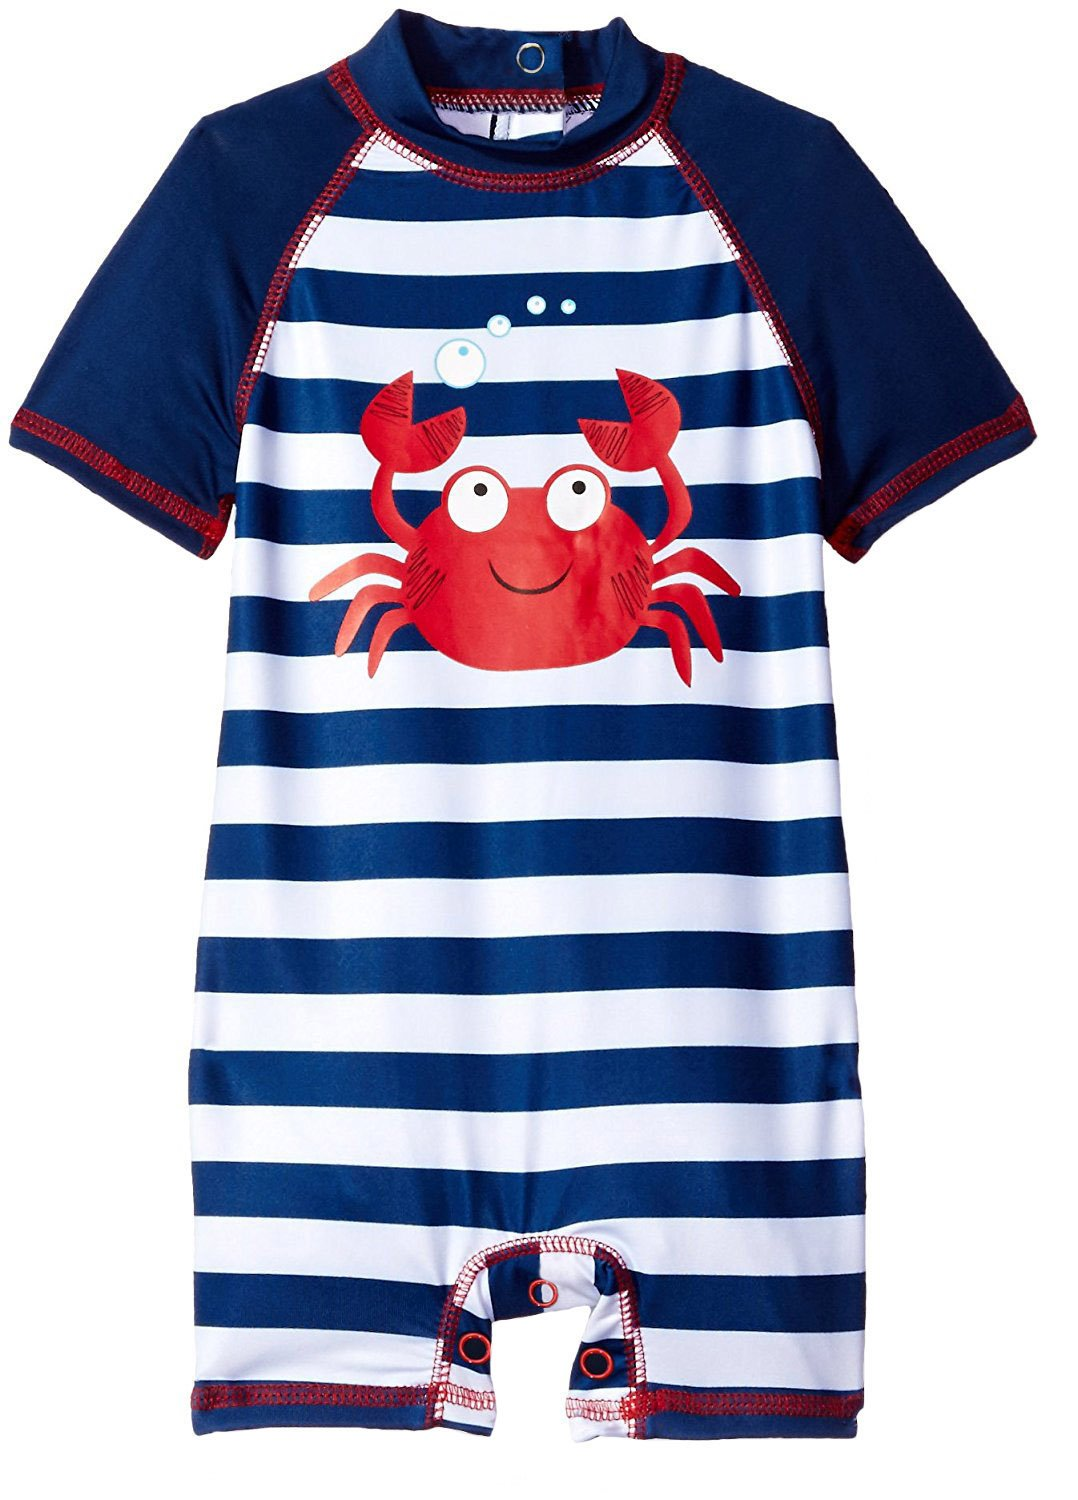 Wippette Baby Boys Stripes Crab One Piece Rash Guard Swimsuit with Snaps, Navy, 18 Months